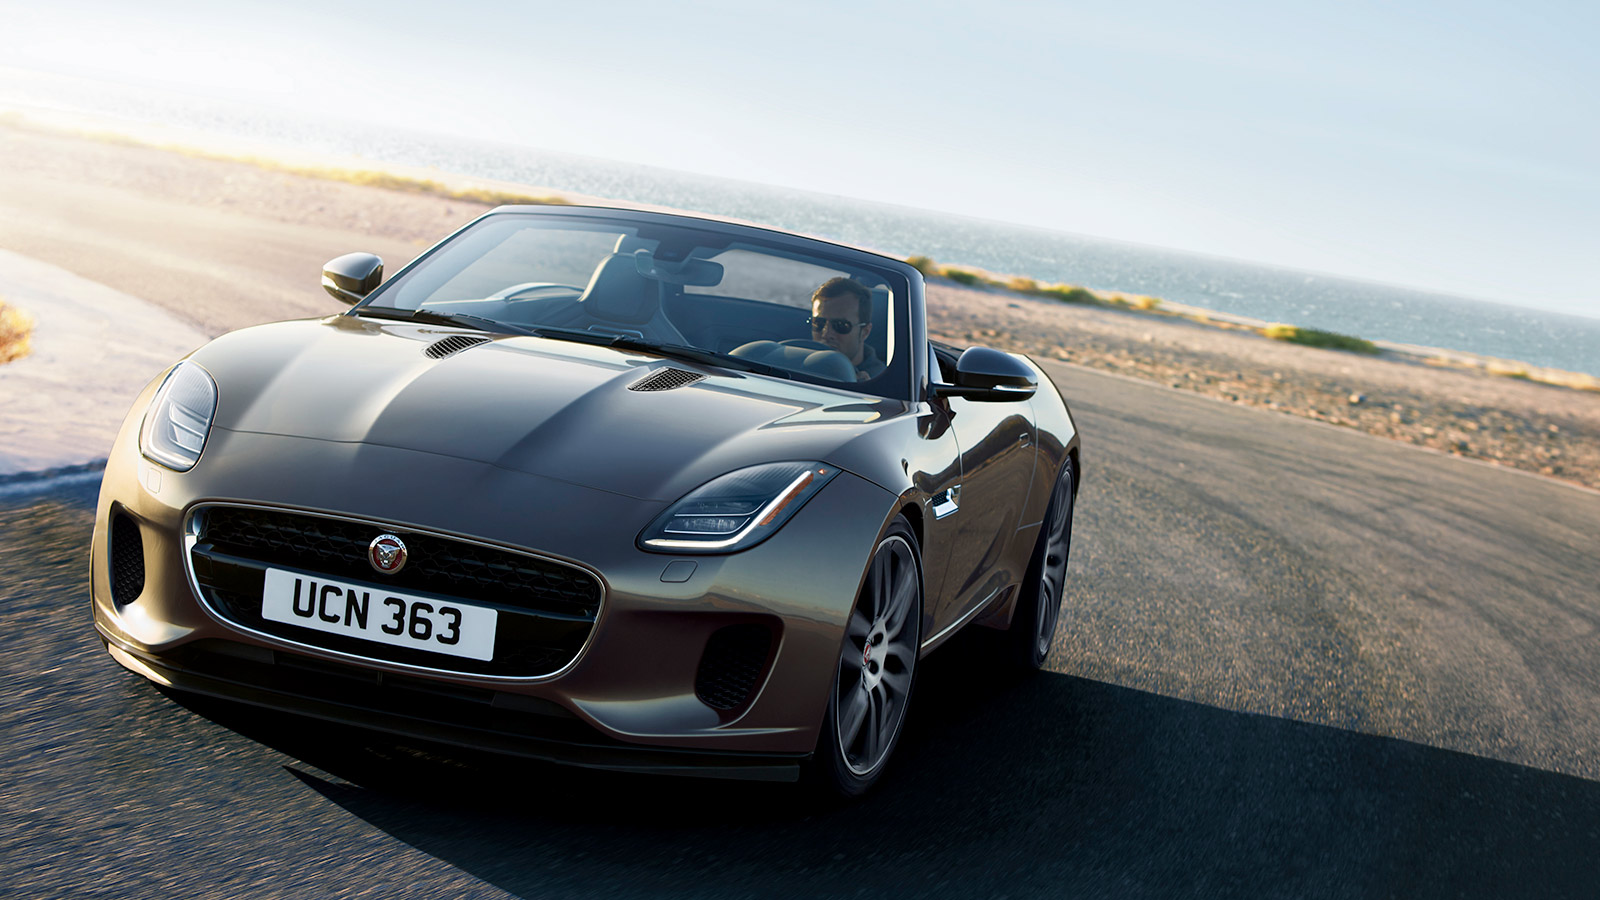 F-TYPE R-Dynamic in Silicon Silver Driving Around Corner